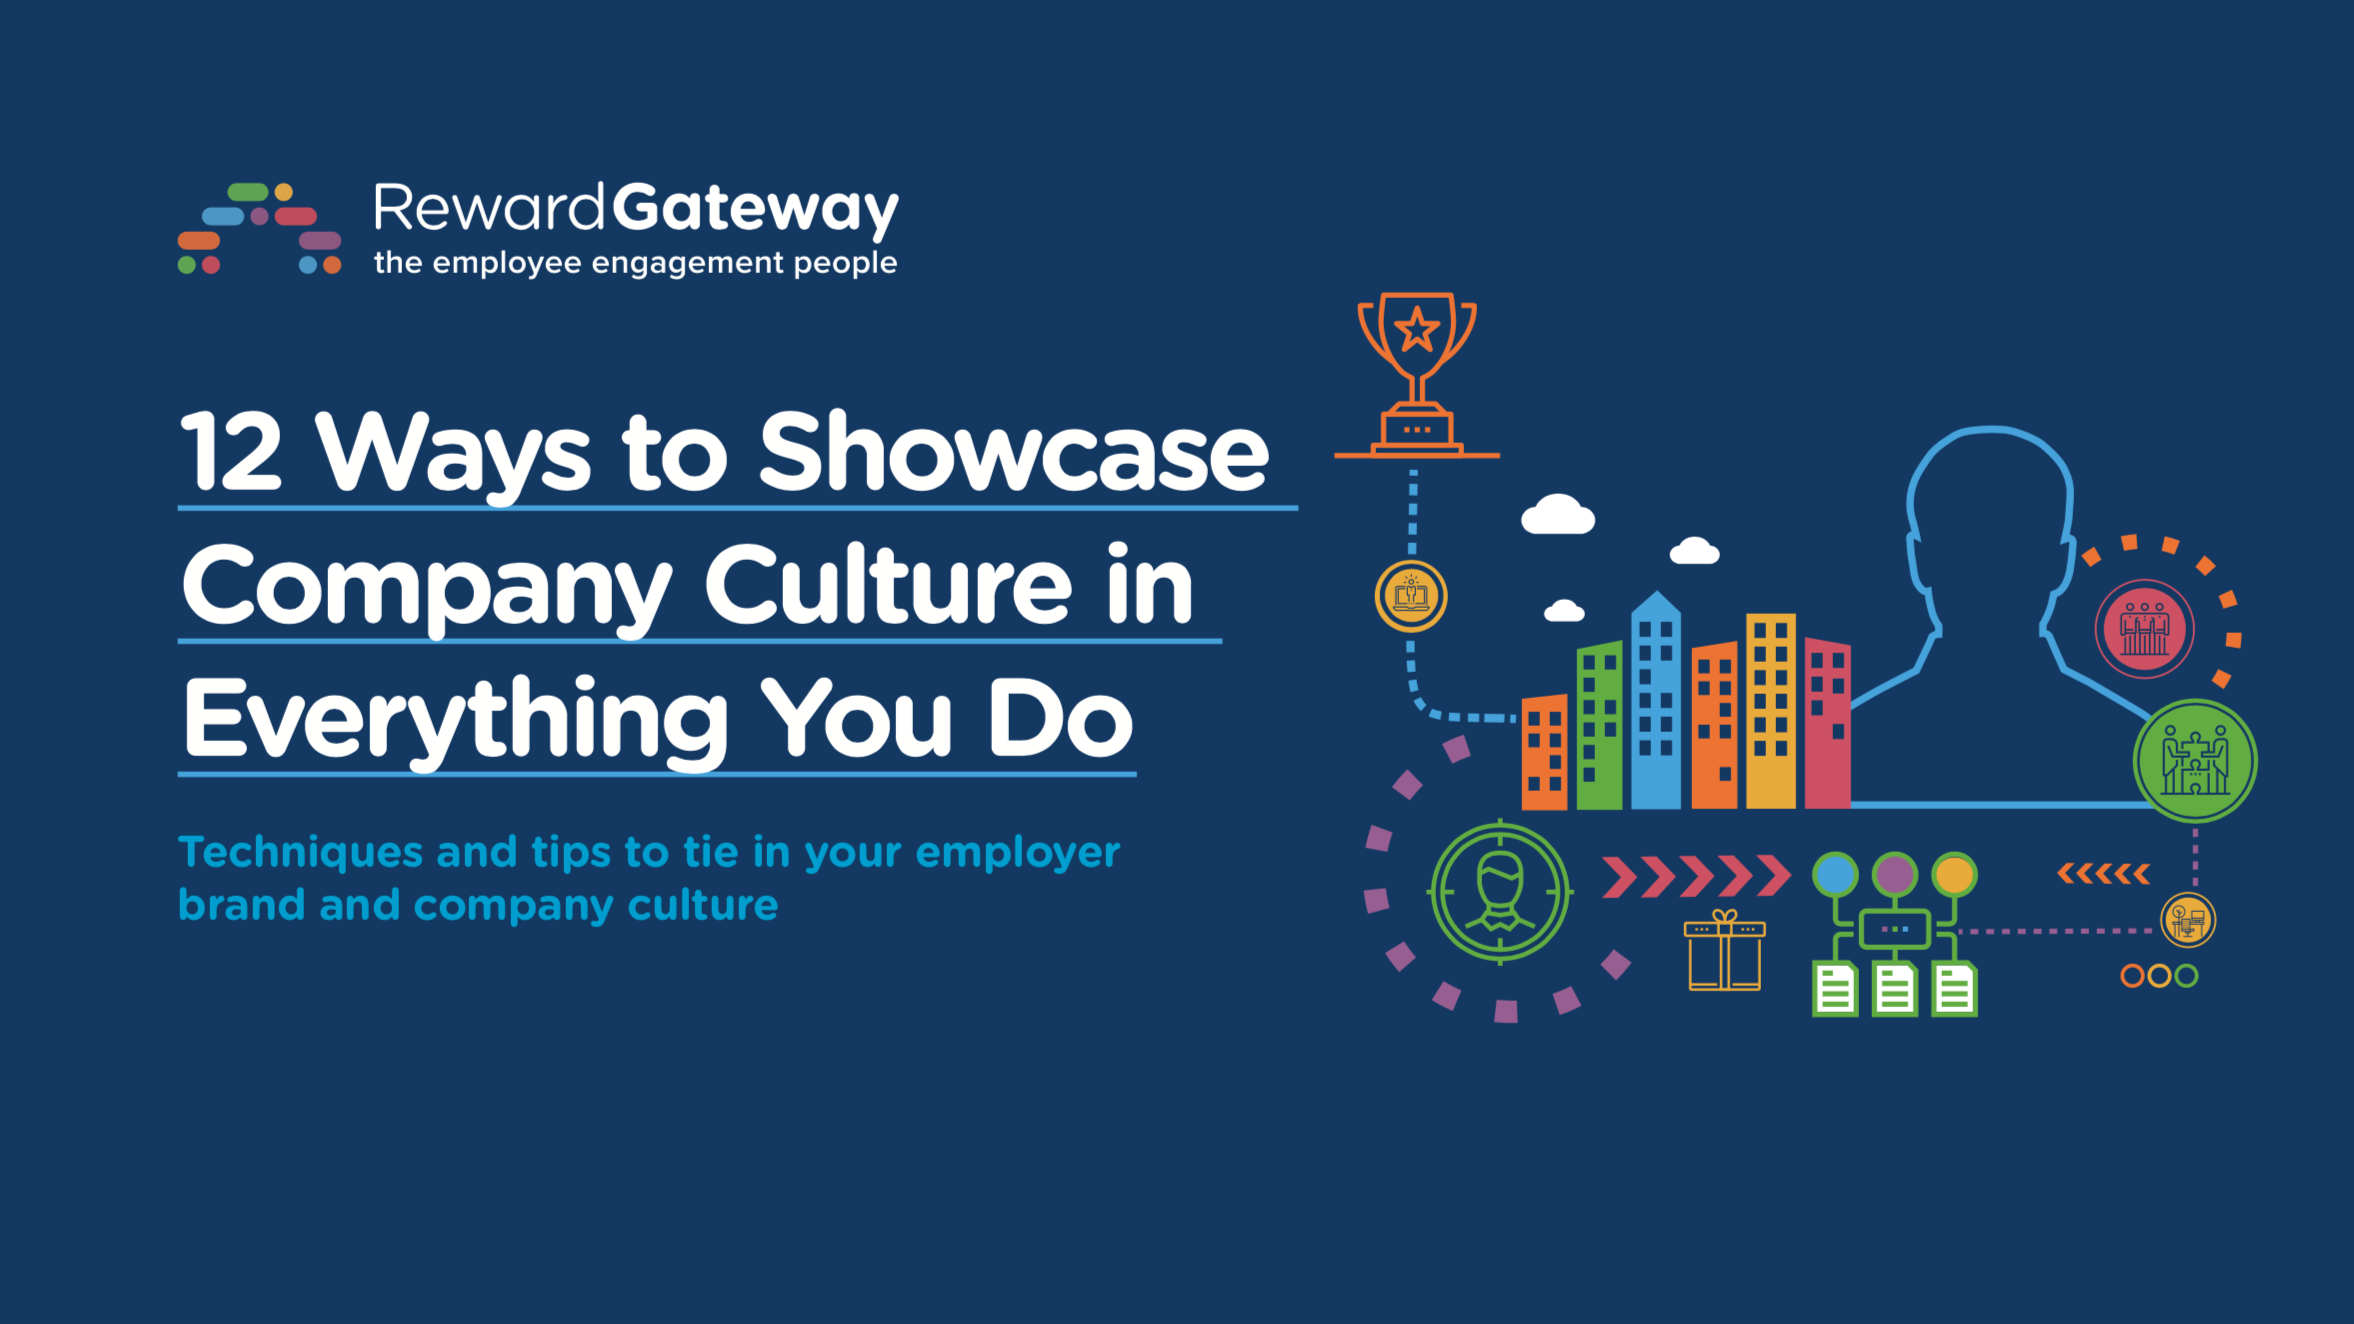 showcase-company-culture-in-everything-you-do